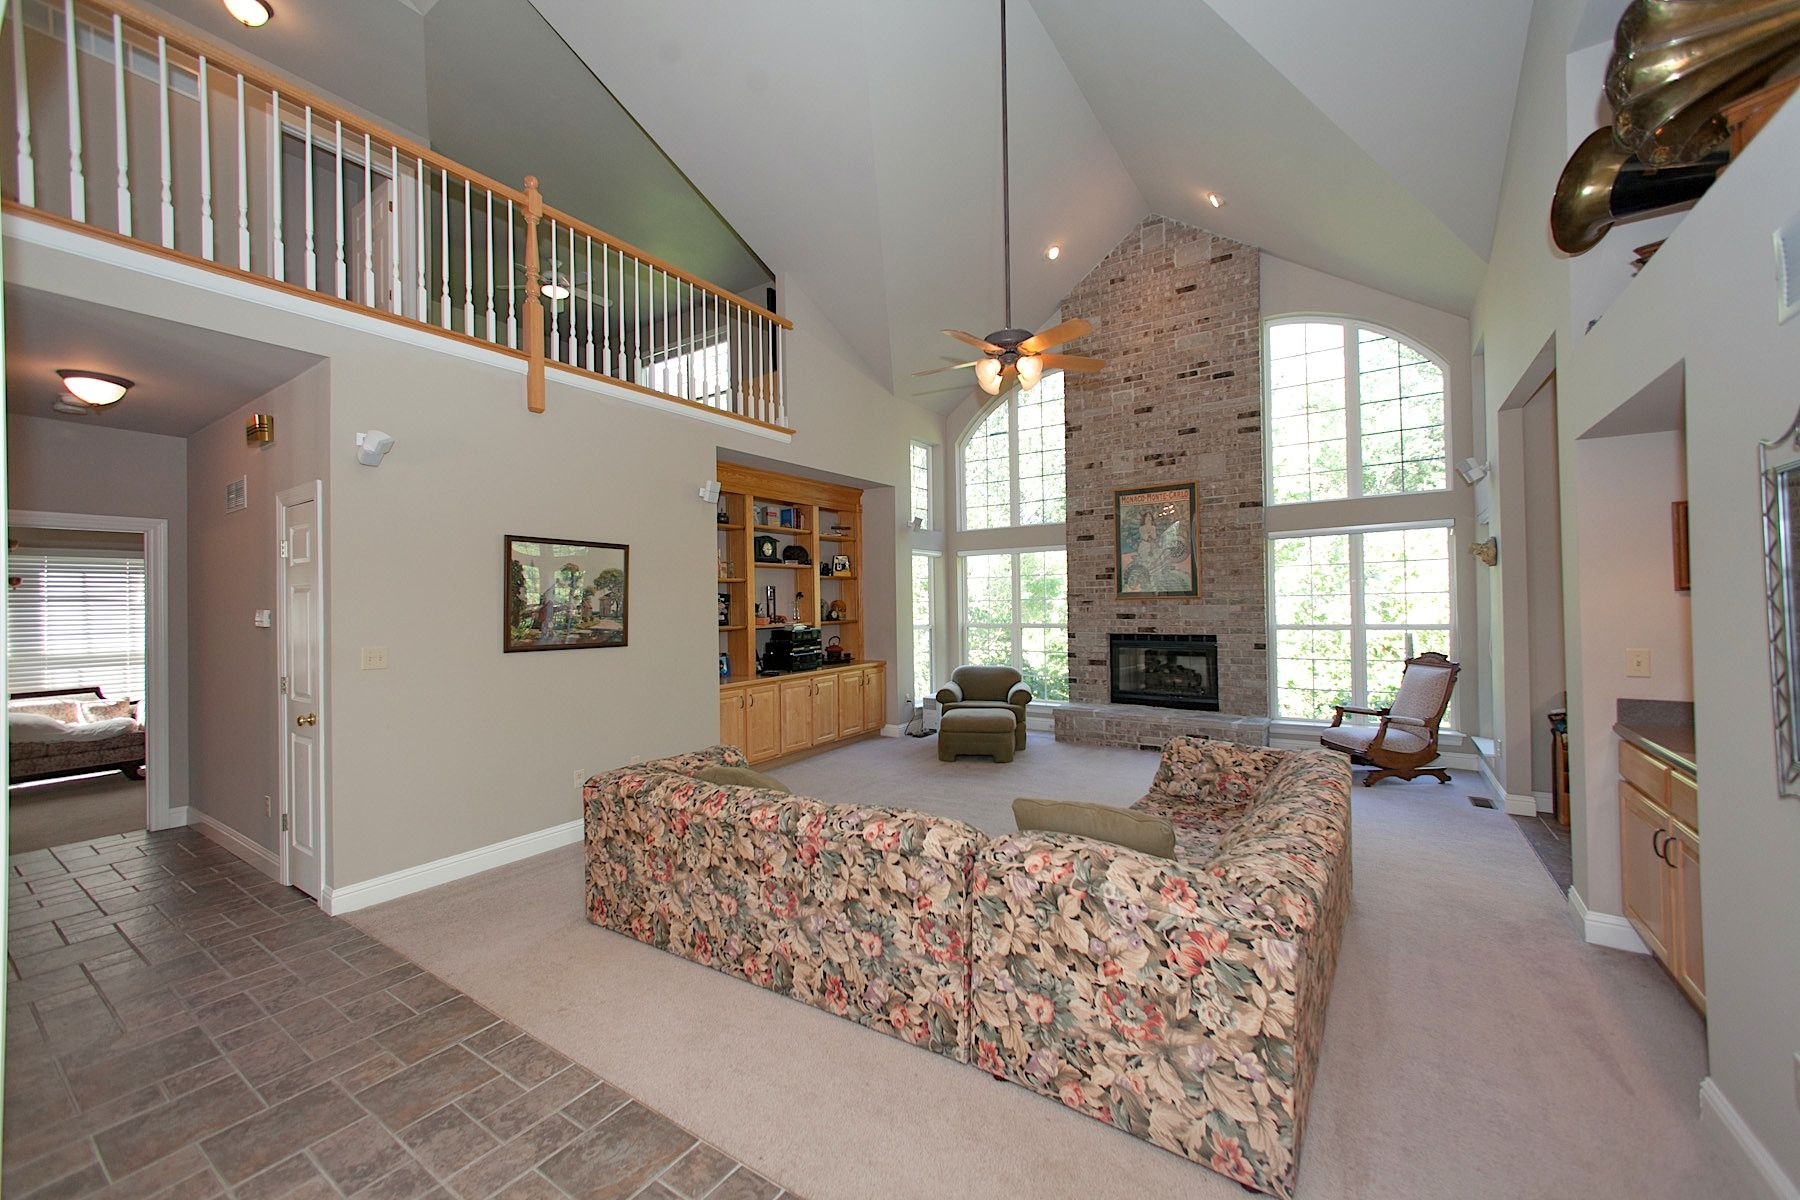 2 Story Great Room With Floor To Ceiling Windows Vaulted Ceiling